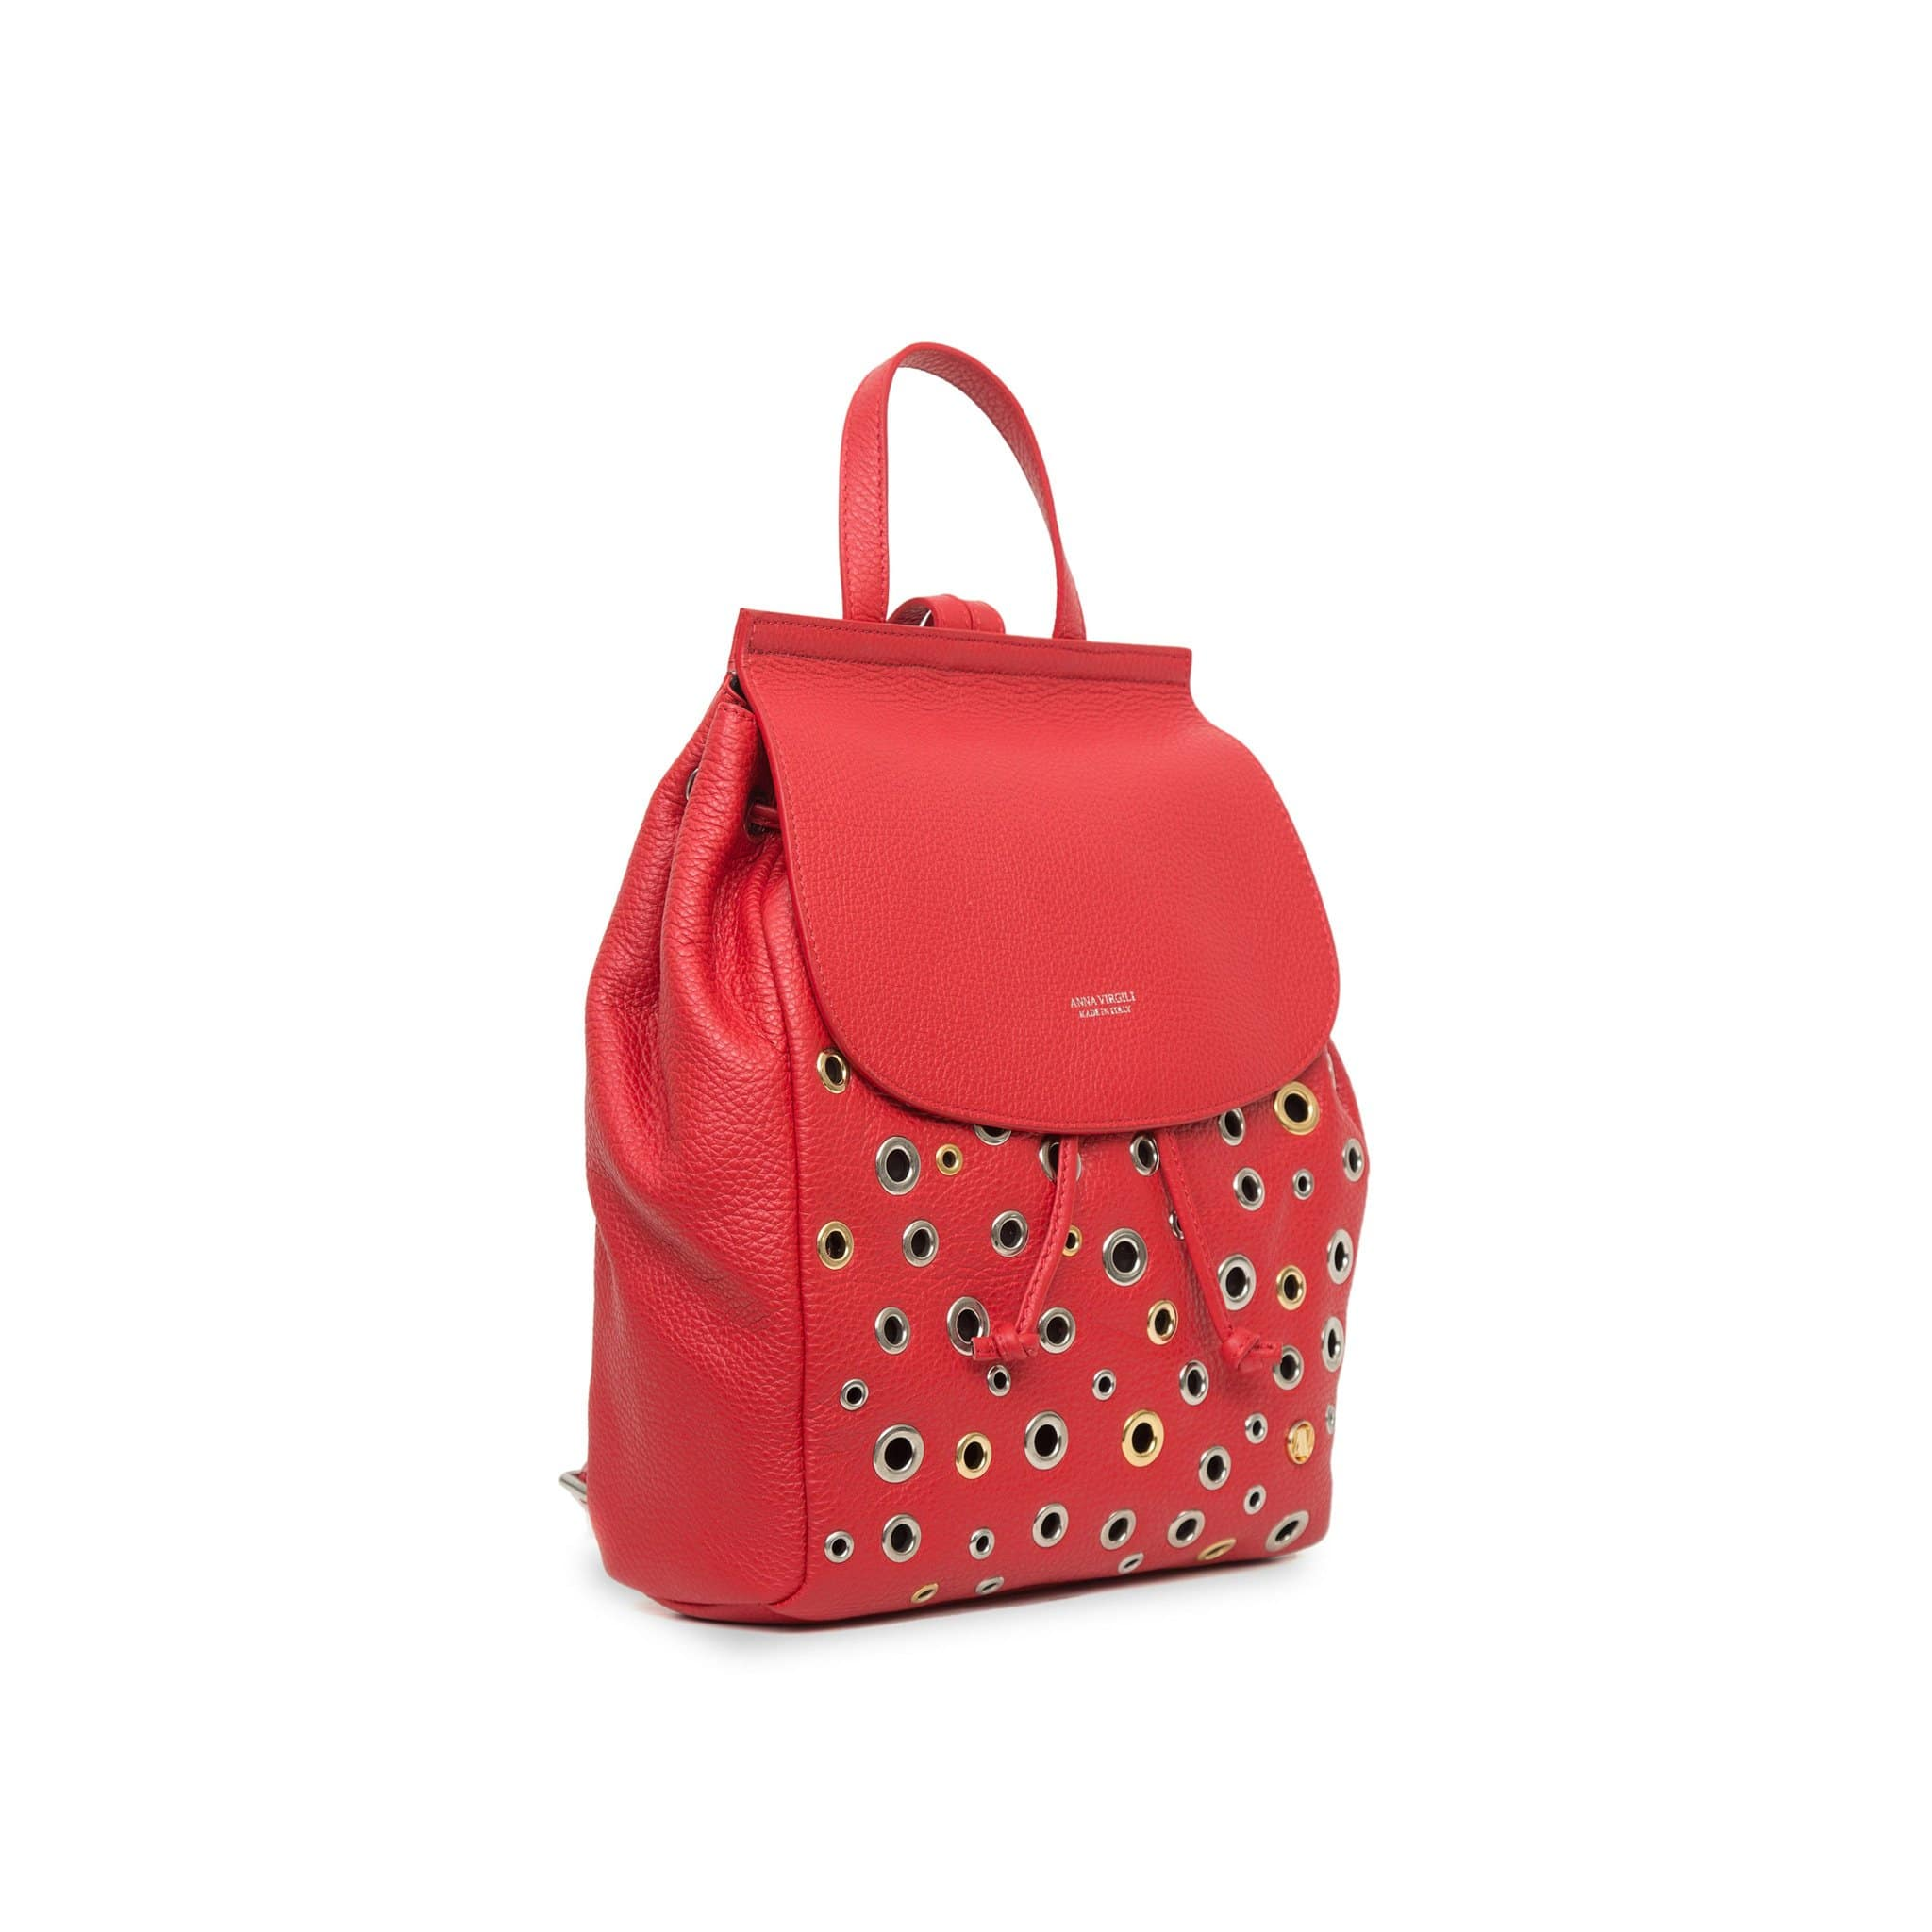 Margherita Rock Leather Backpack - Red